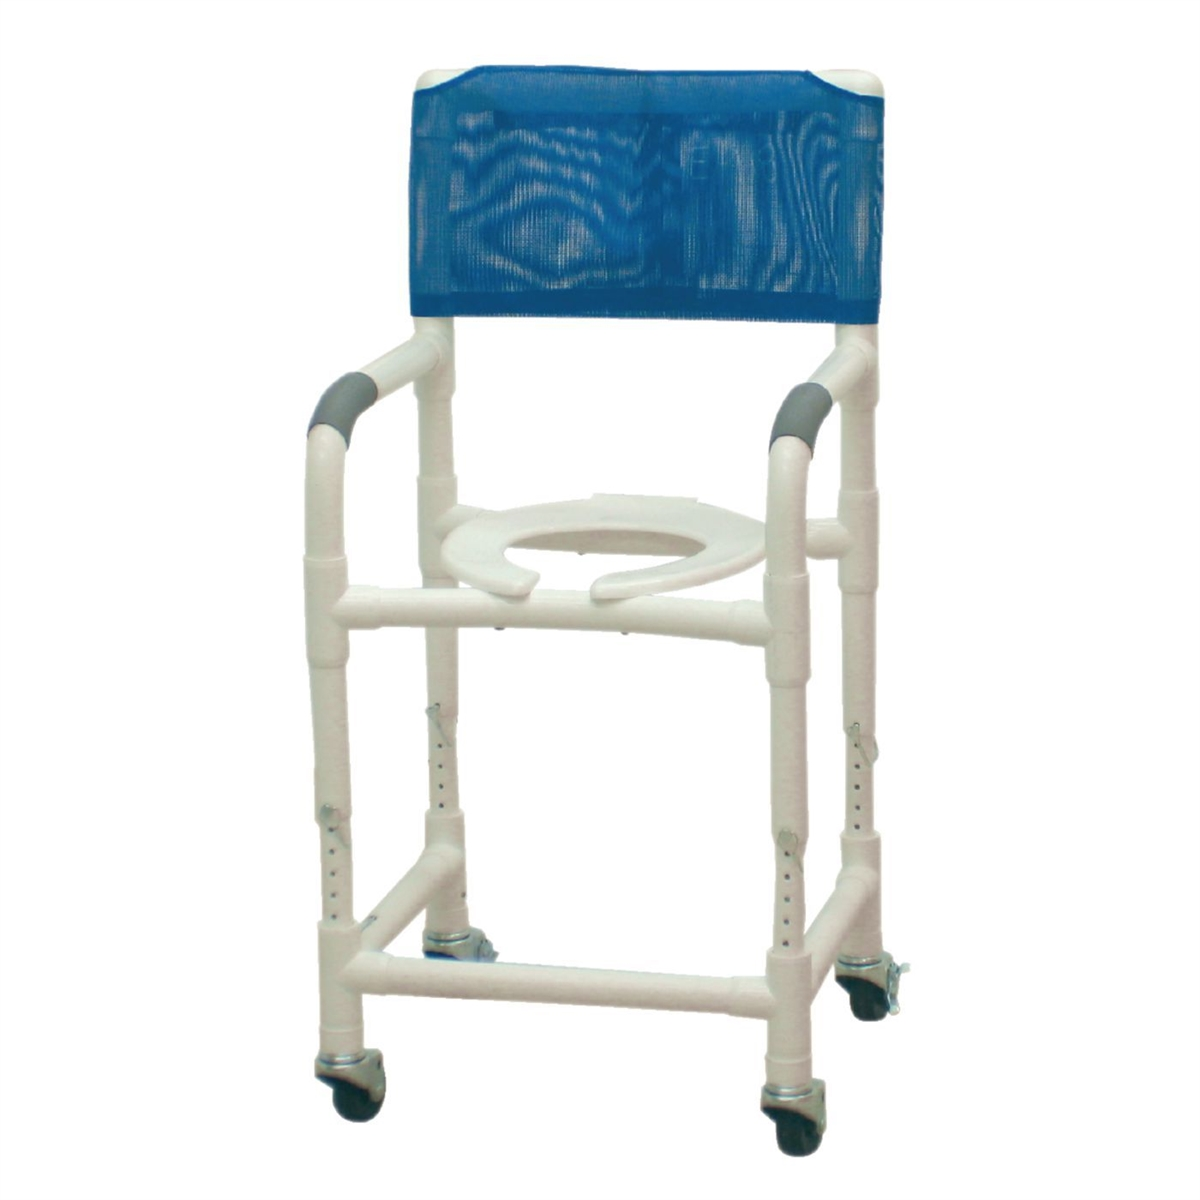 Mjm 081569003 Adjustable Height Rolling Shower Chair 1 Each